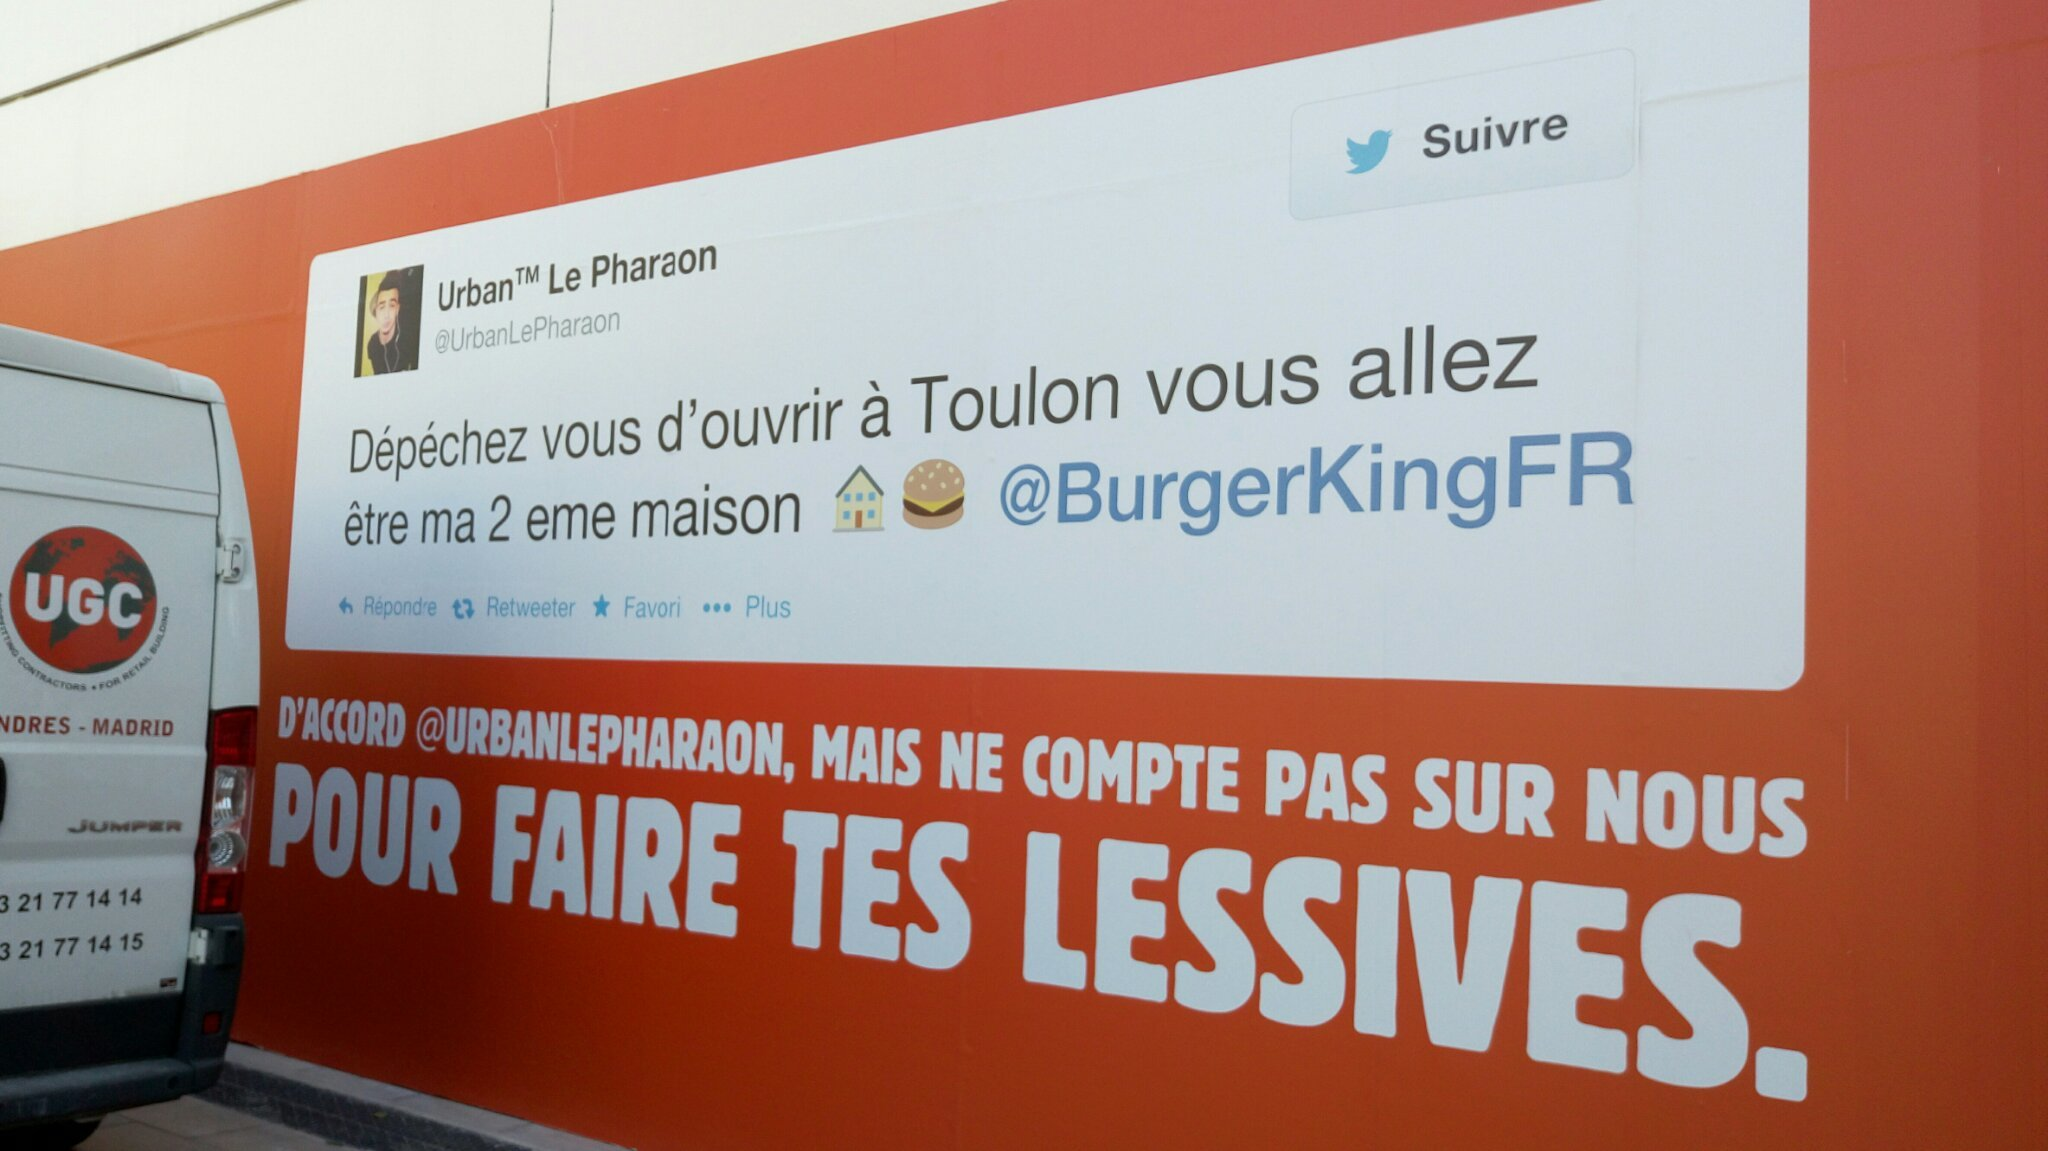 Burger King et la tradition - meme